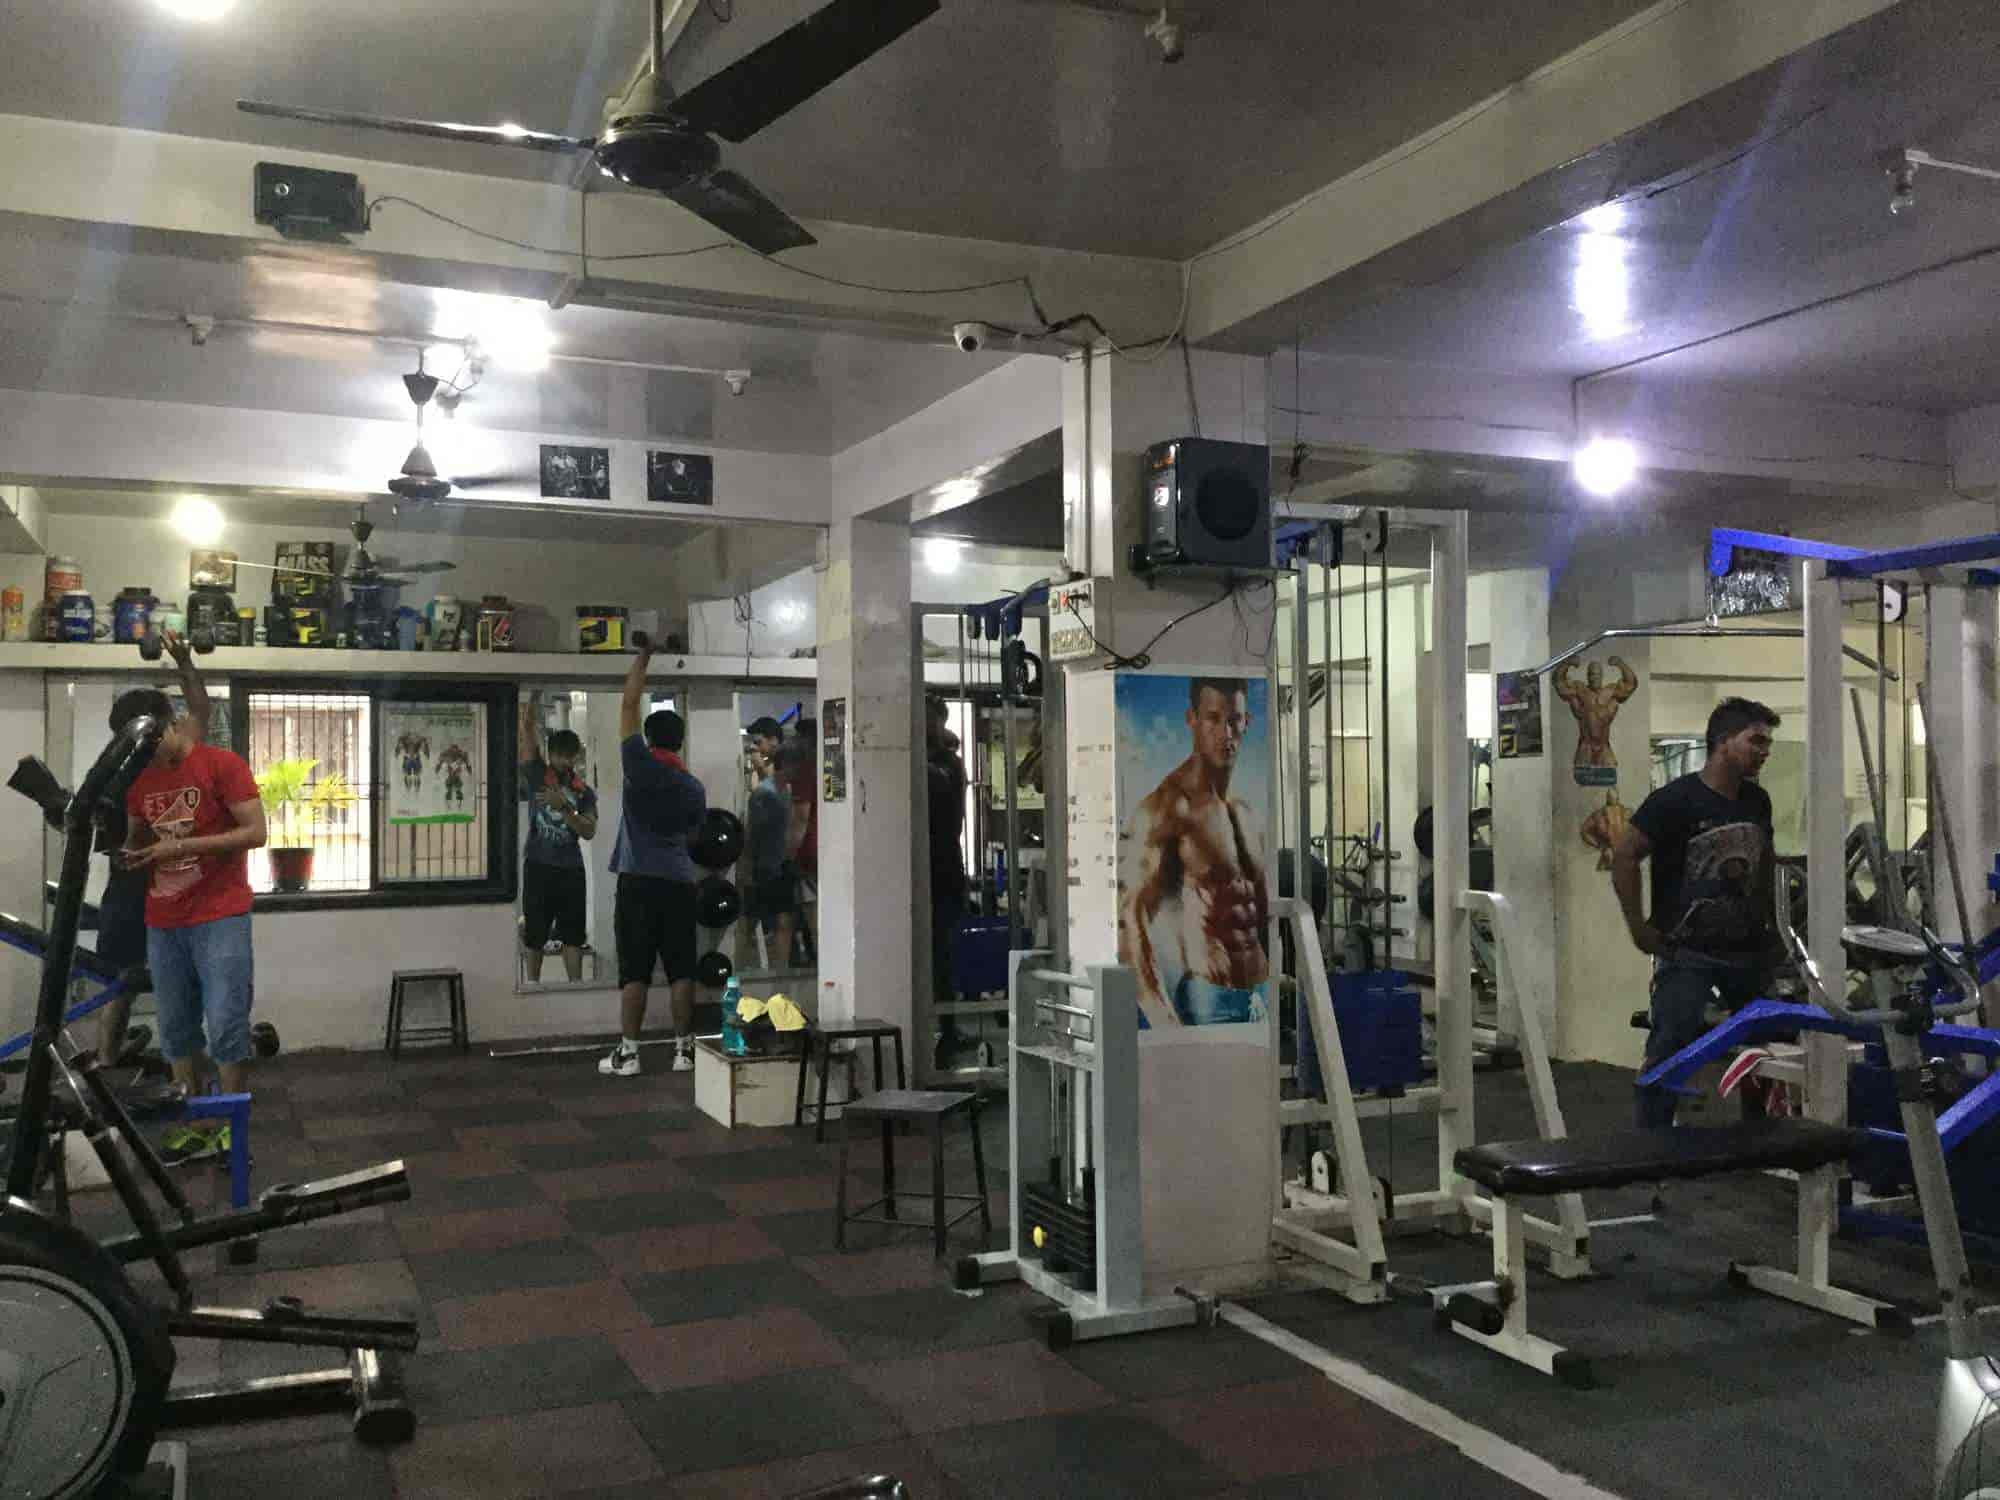 Elite Fitness Gym, Parvat Patia - Gyms in Surat - Justdial